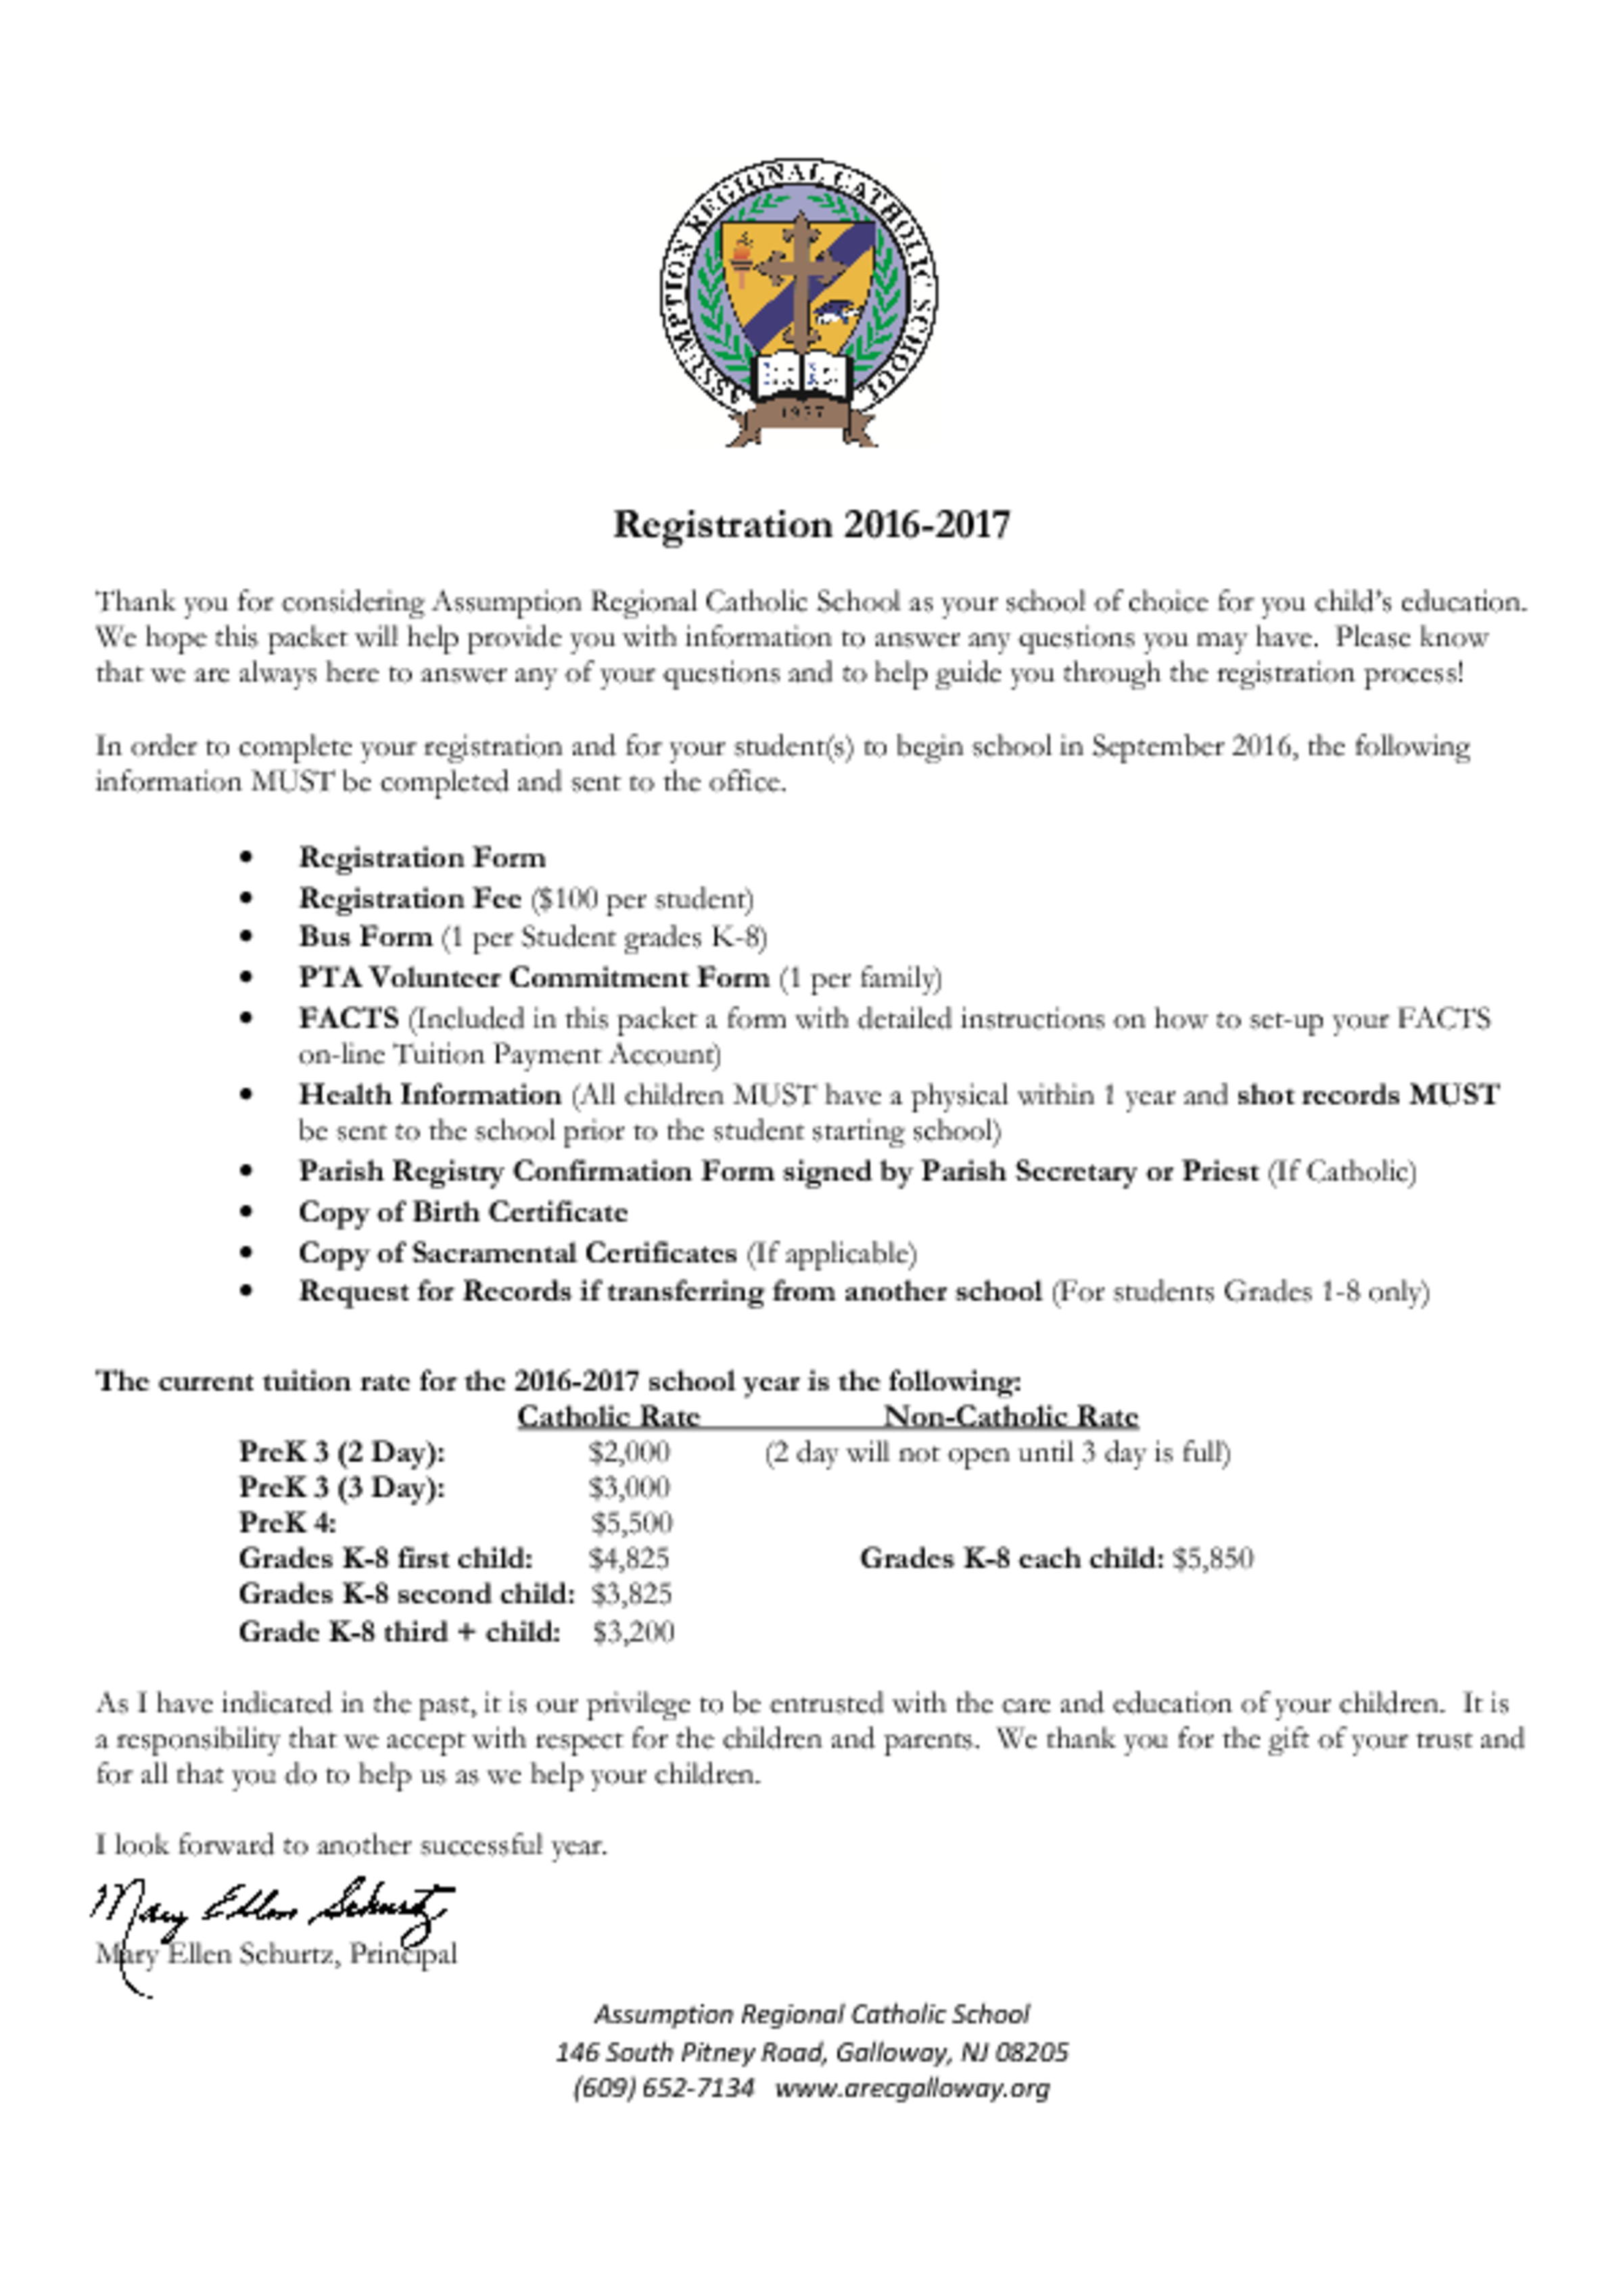 Registration letter new families – Assumption Regional Catholic School